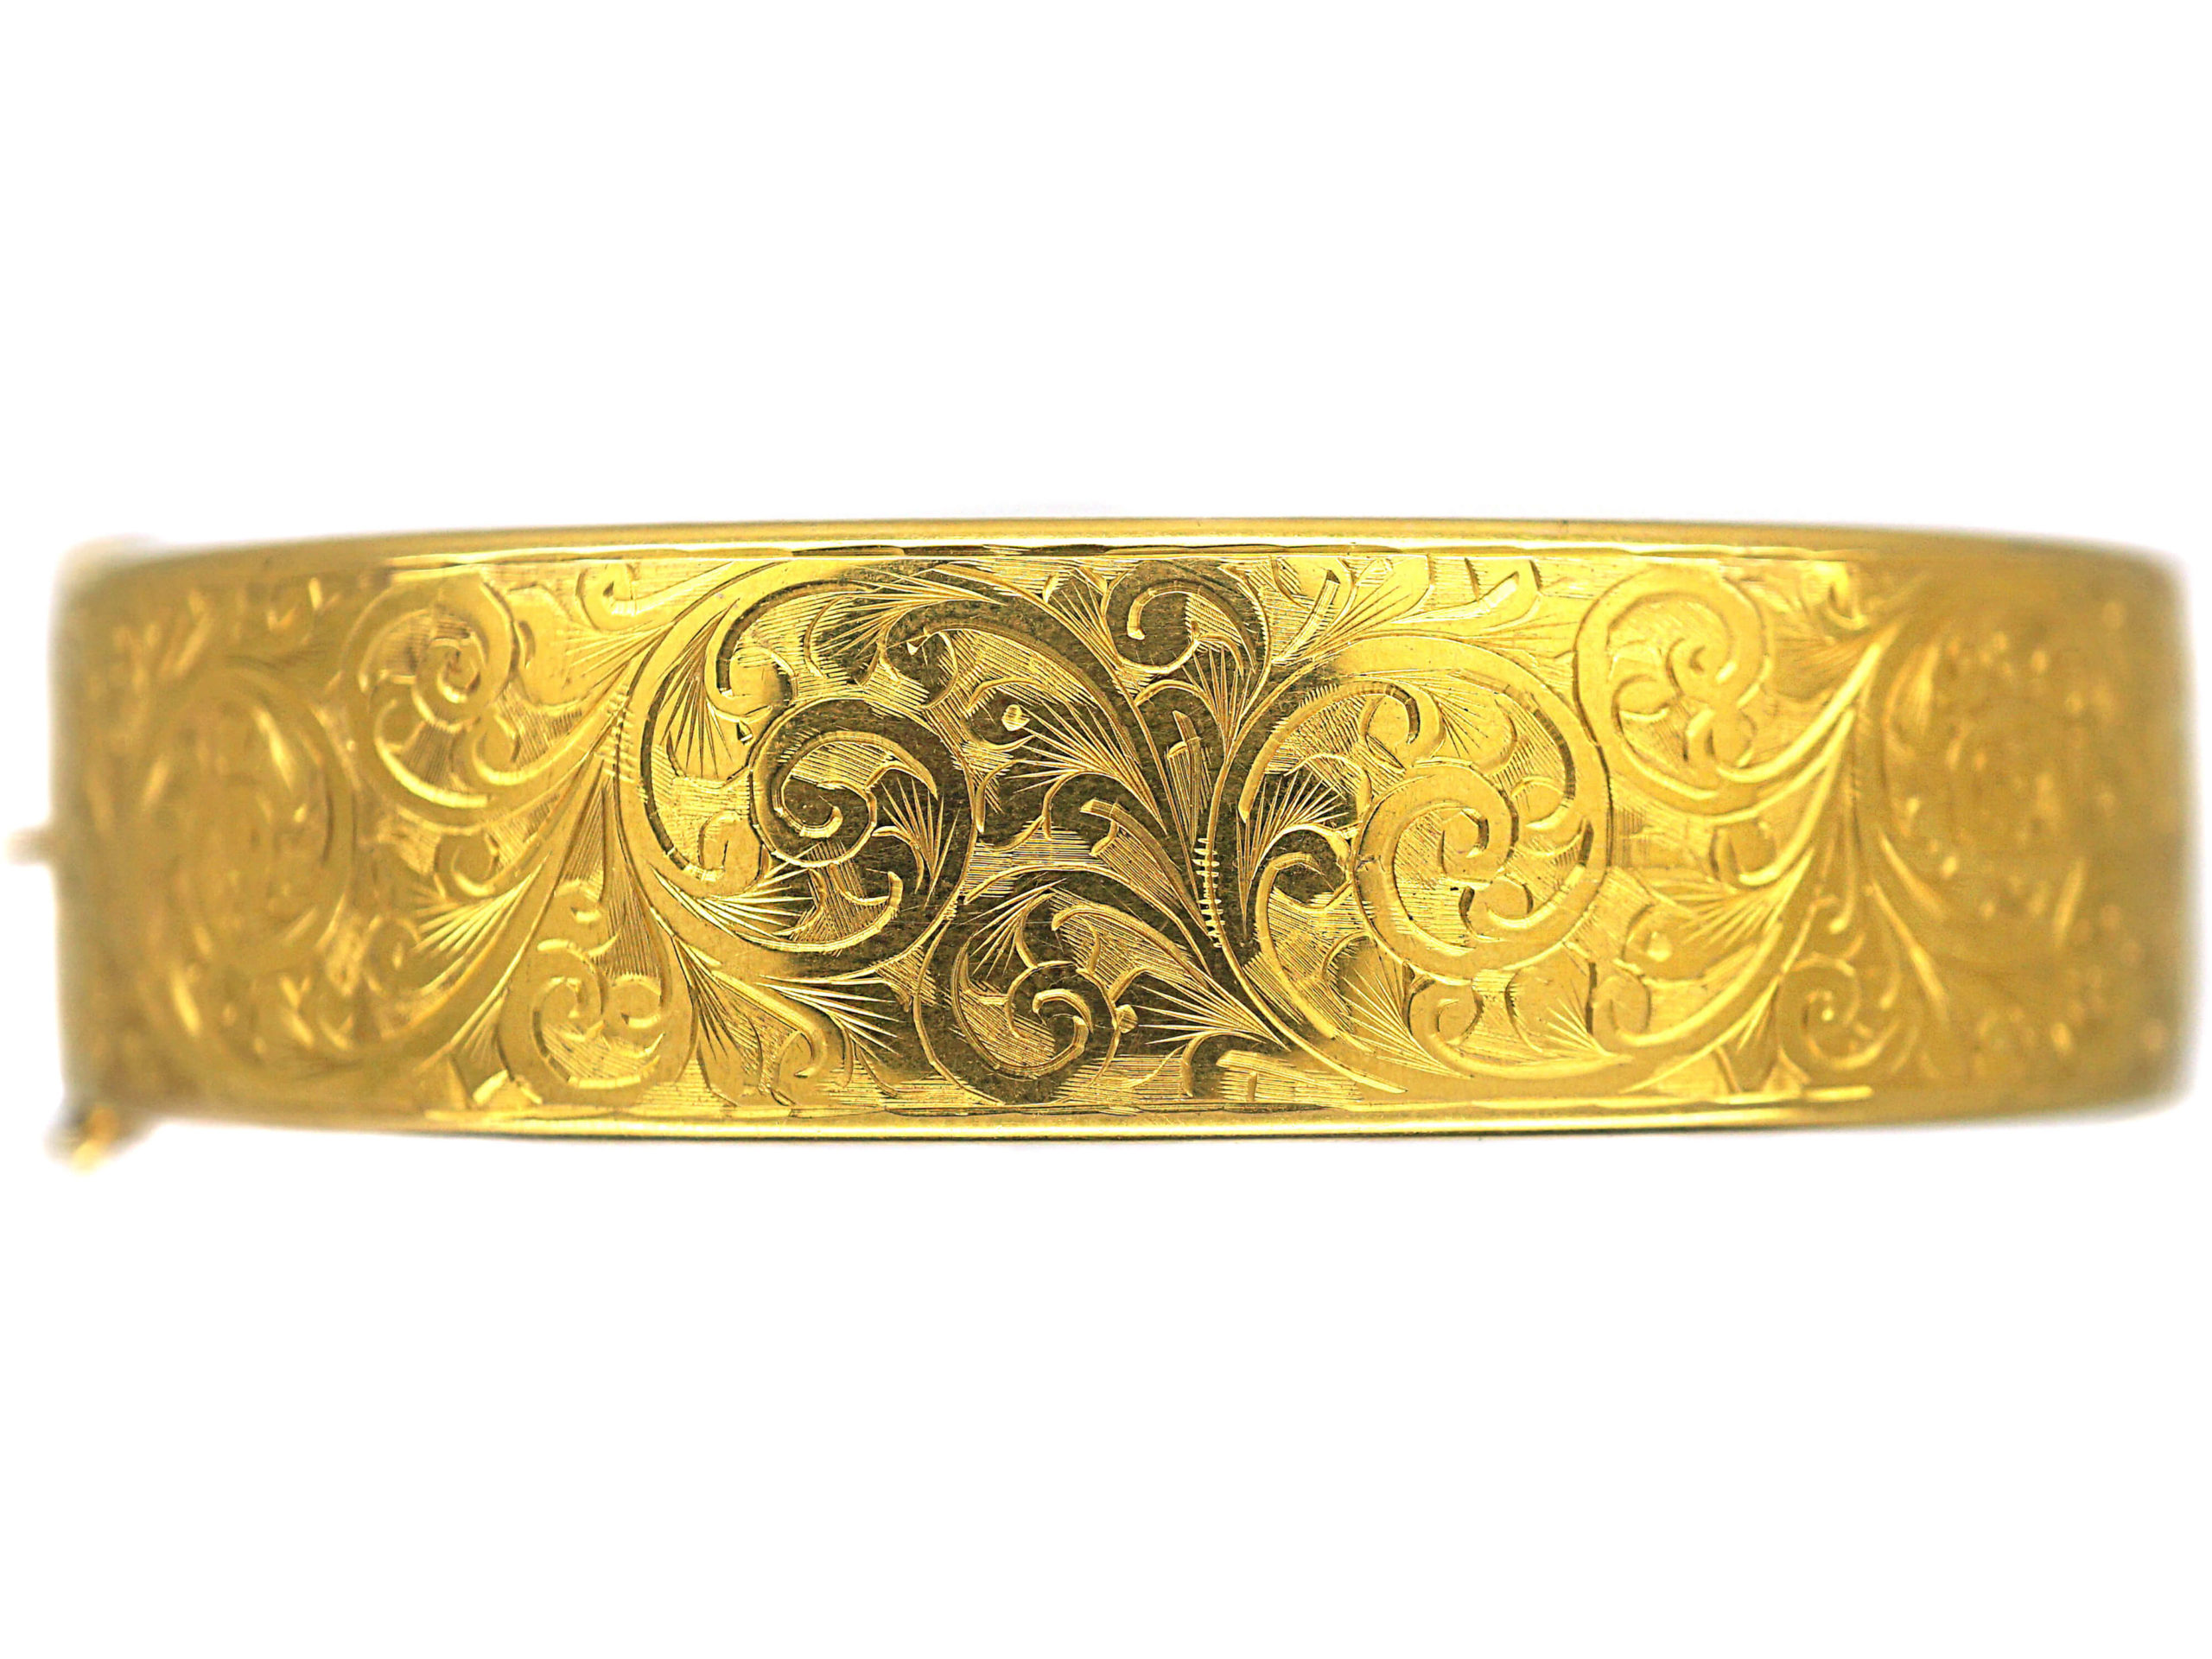 Retro 9ct Gold Bangle with Engraved Foliate Motifs